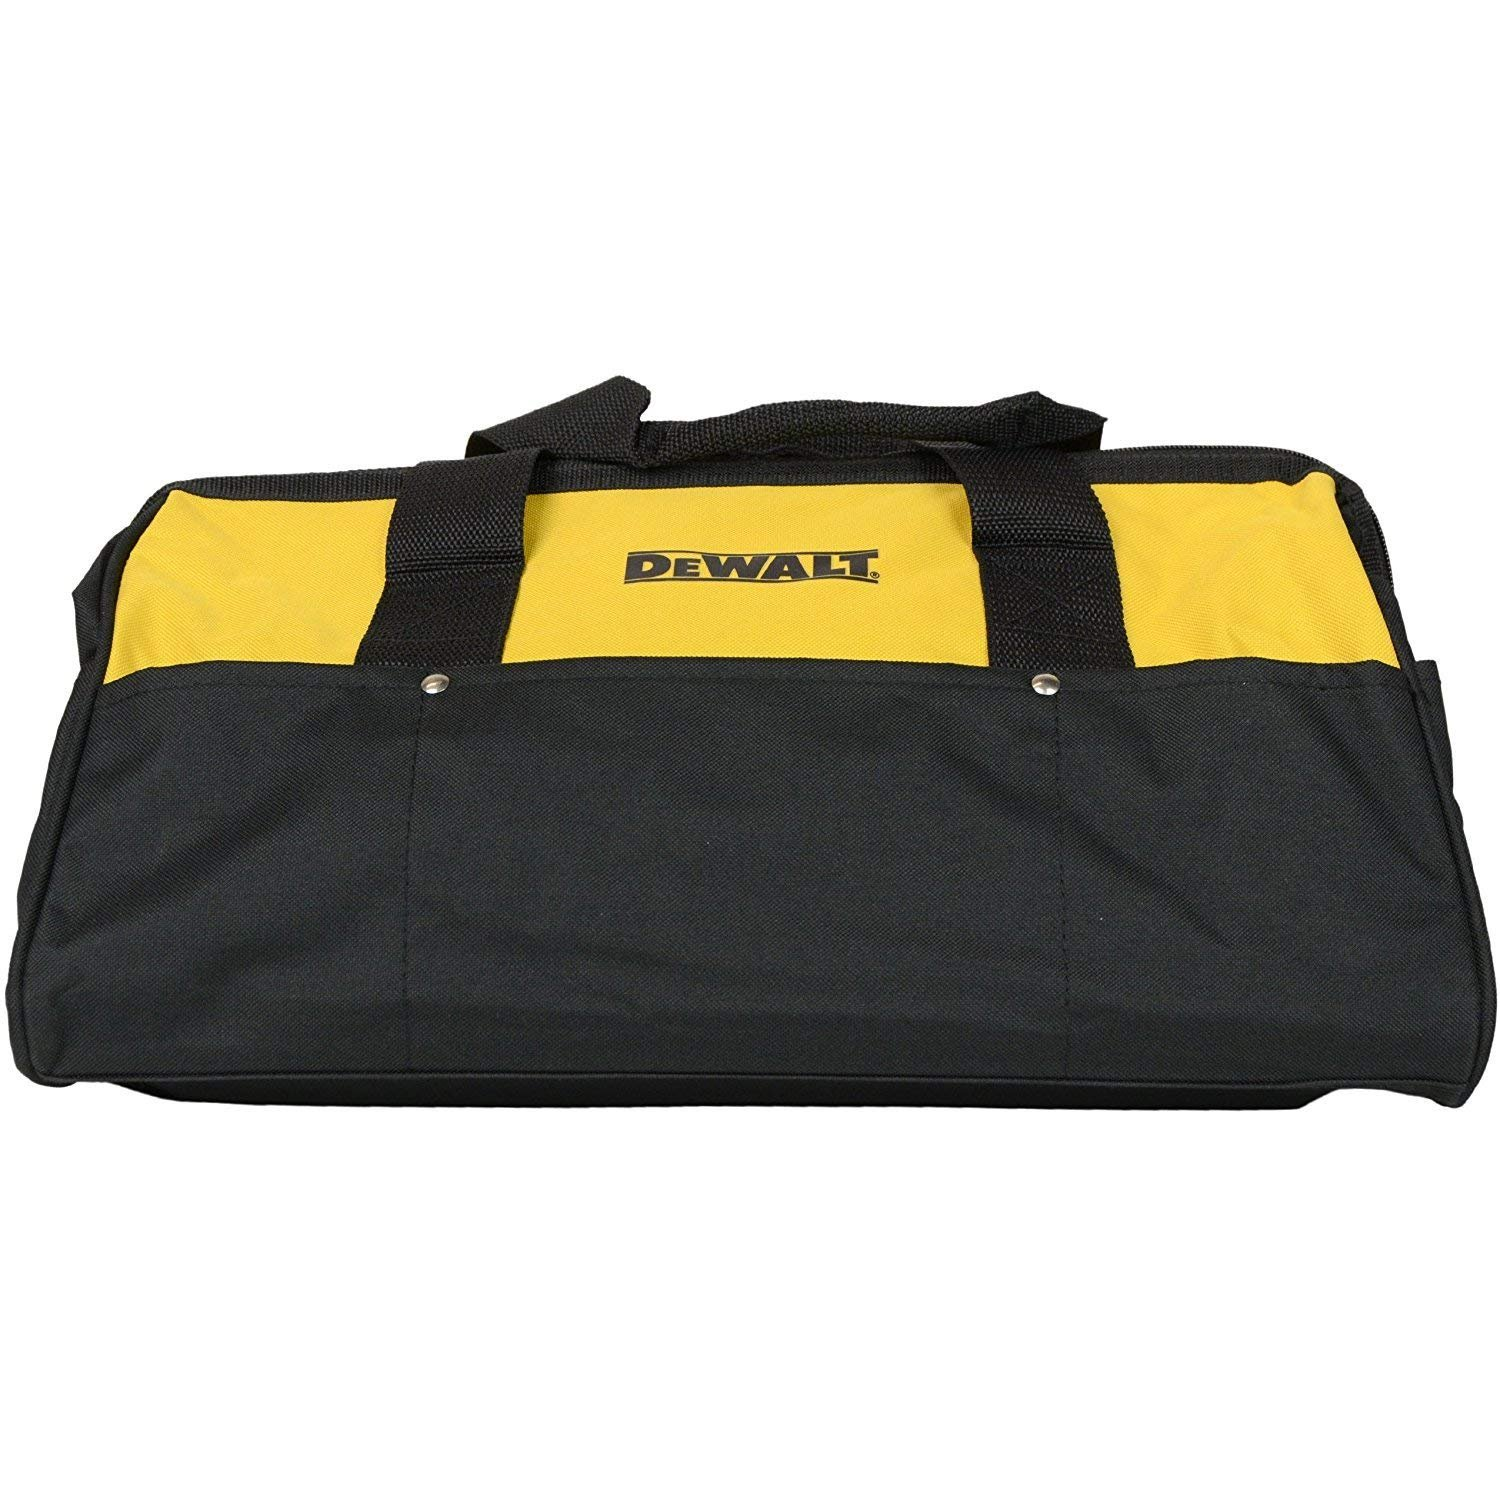 DEWALT DCBAG3 Heavy-Duty Ballictic Nylon 18 1/2-Inch Tool Bag